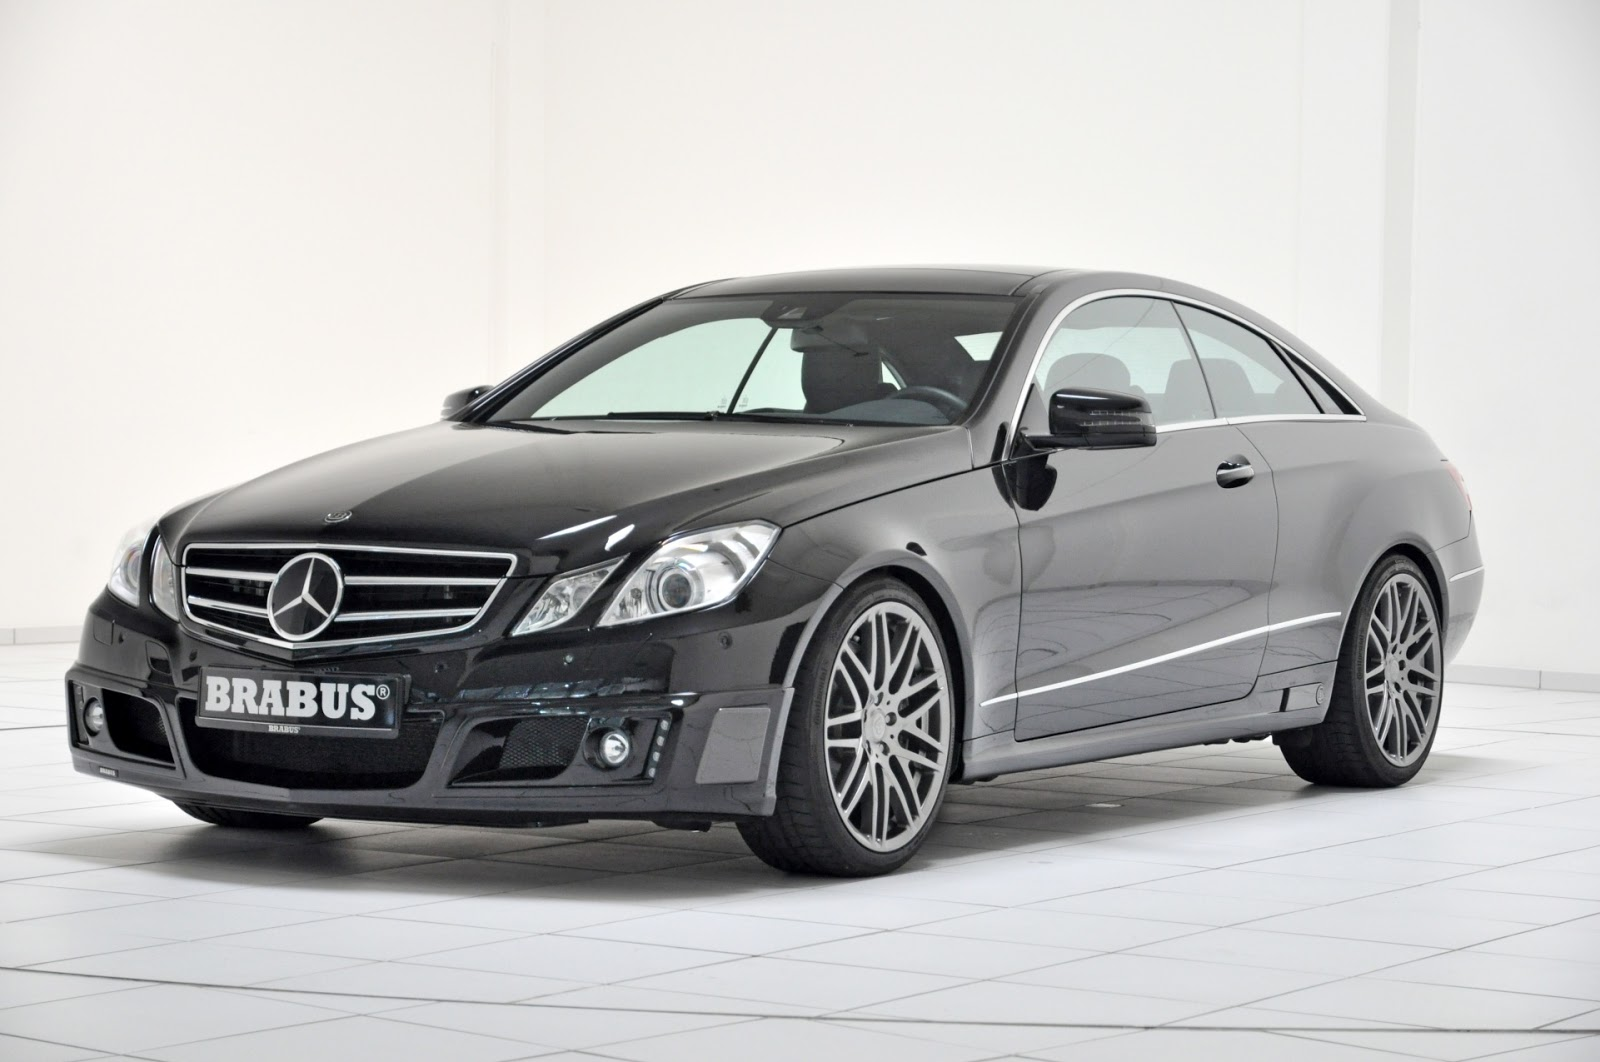 all tuning cars nz 2012 brabus b50 500 mercedes benz e class coupe. Black Bedroom Furniture Sets. Home Design Ideas